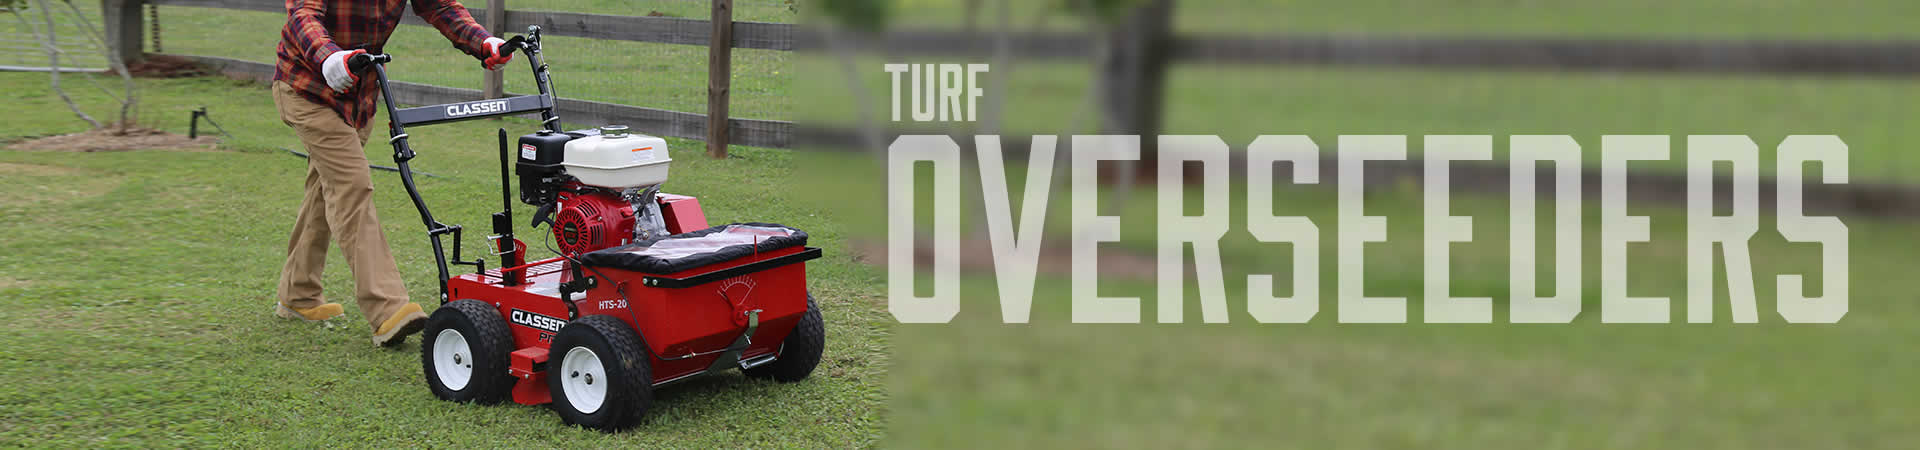 Clen Turf Overseeders Make It Easy And Convenient To Seed A New Lawn Or Overseed An Existing The Front Drop Ensures Follow Up Soil Coverage